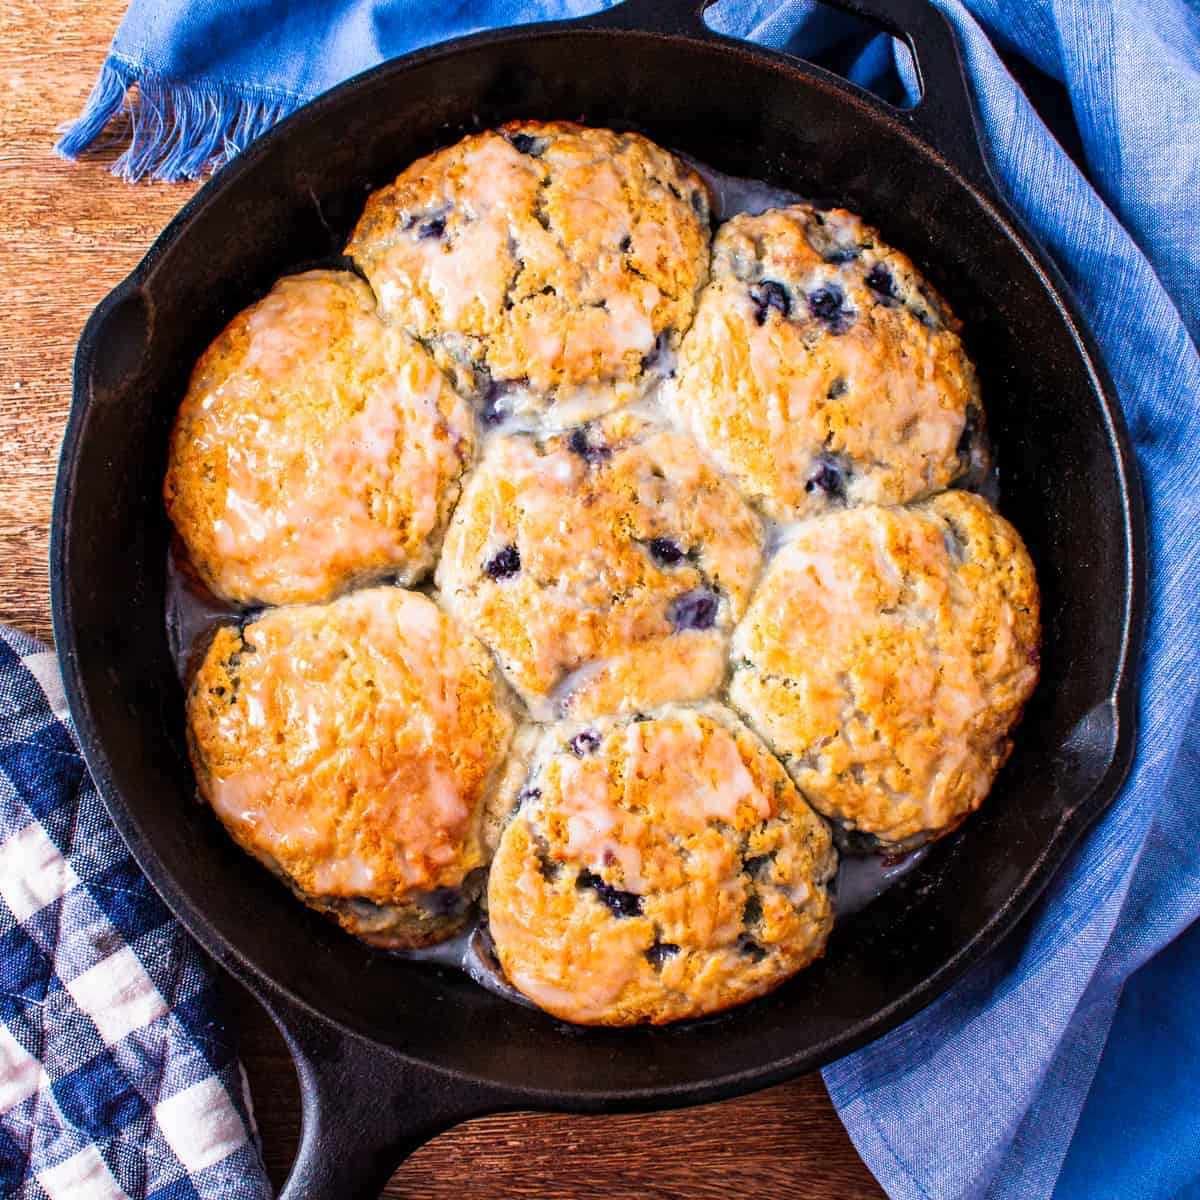 Overhead view of a cast iron skillet full of golden brown glazed blueberry biscuits.